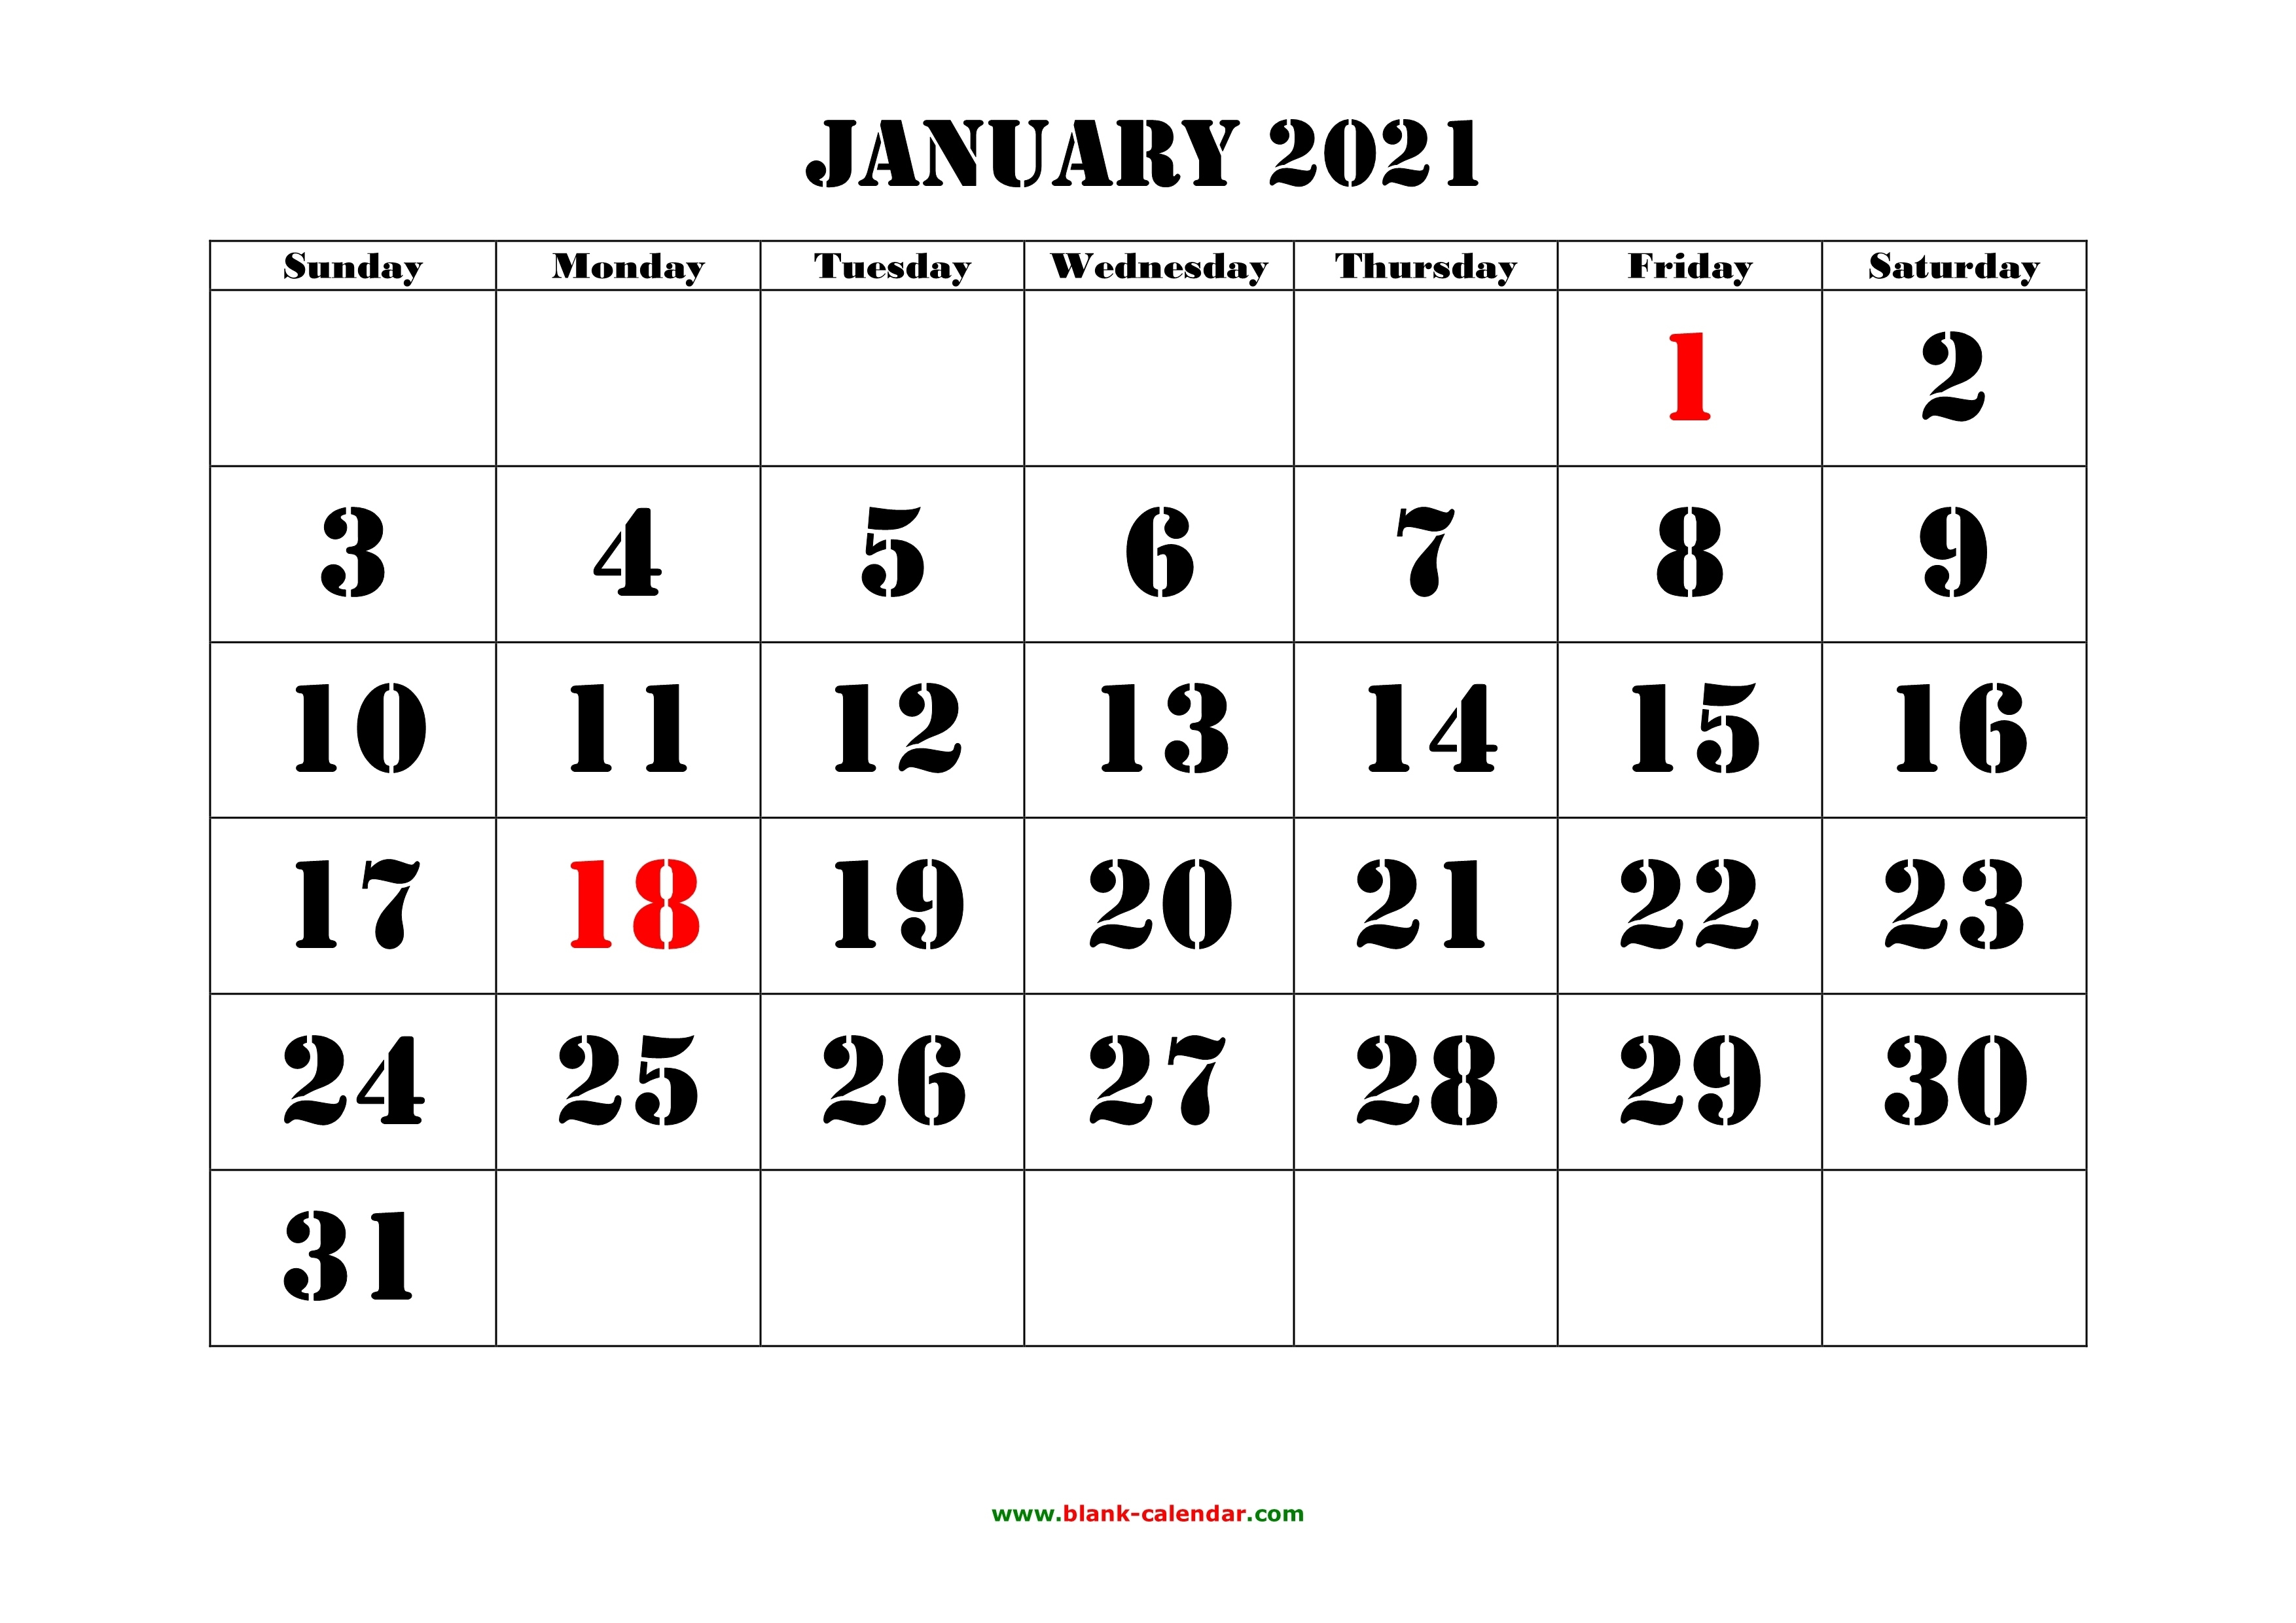 Printable Calendar 2021 | Free Download Yearly Calendar Printable 3 Months At A Time Calendar 2021